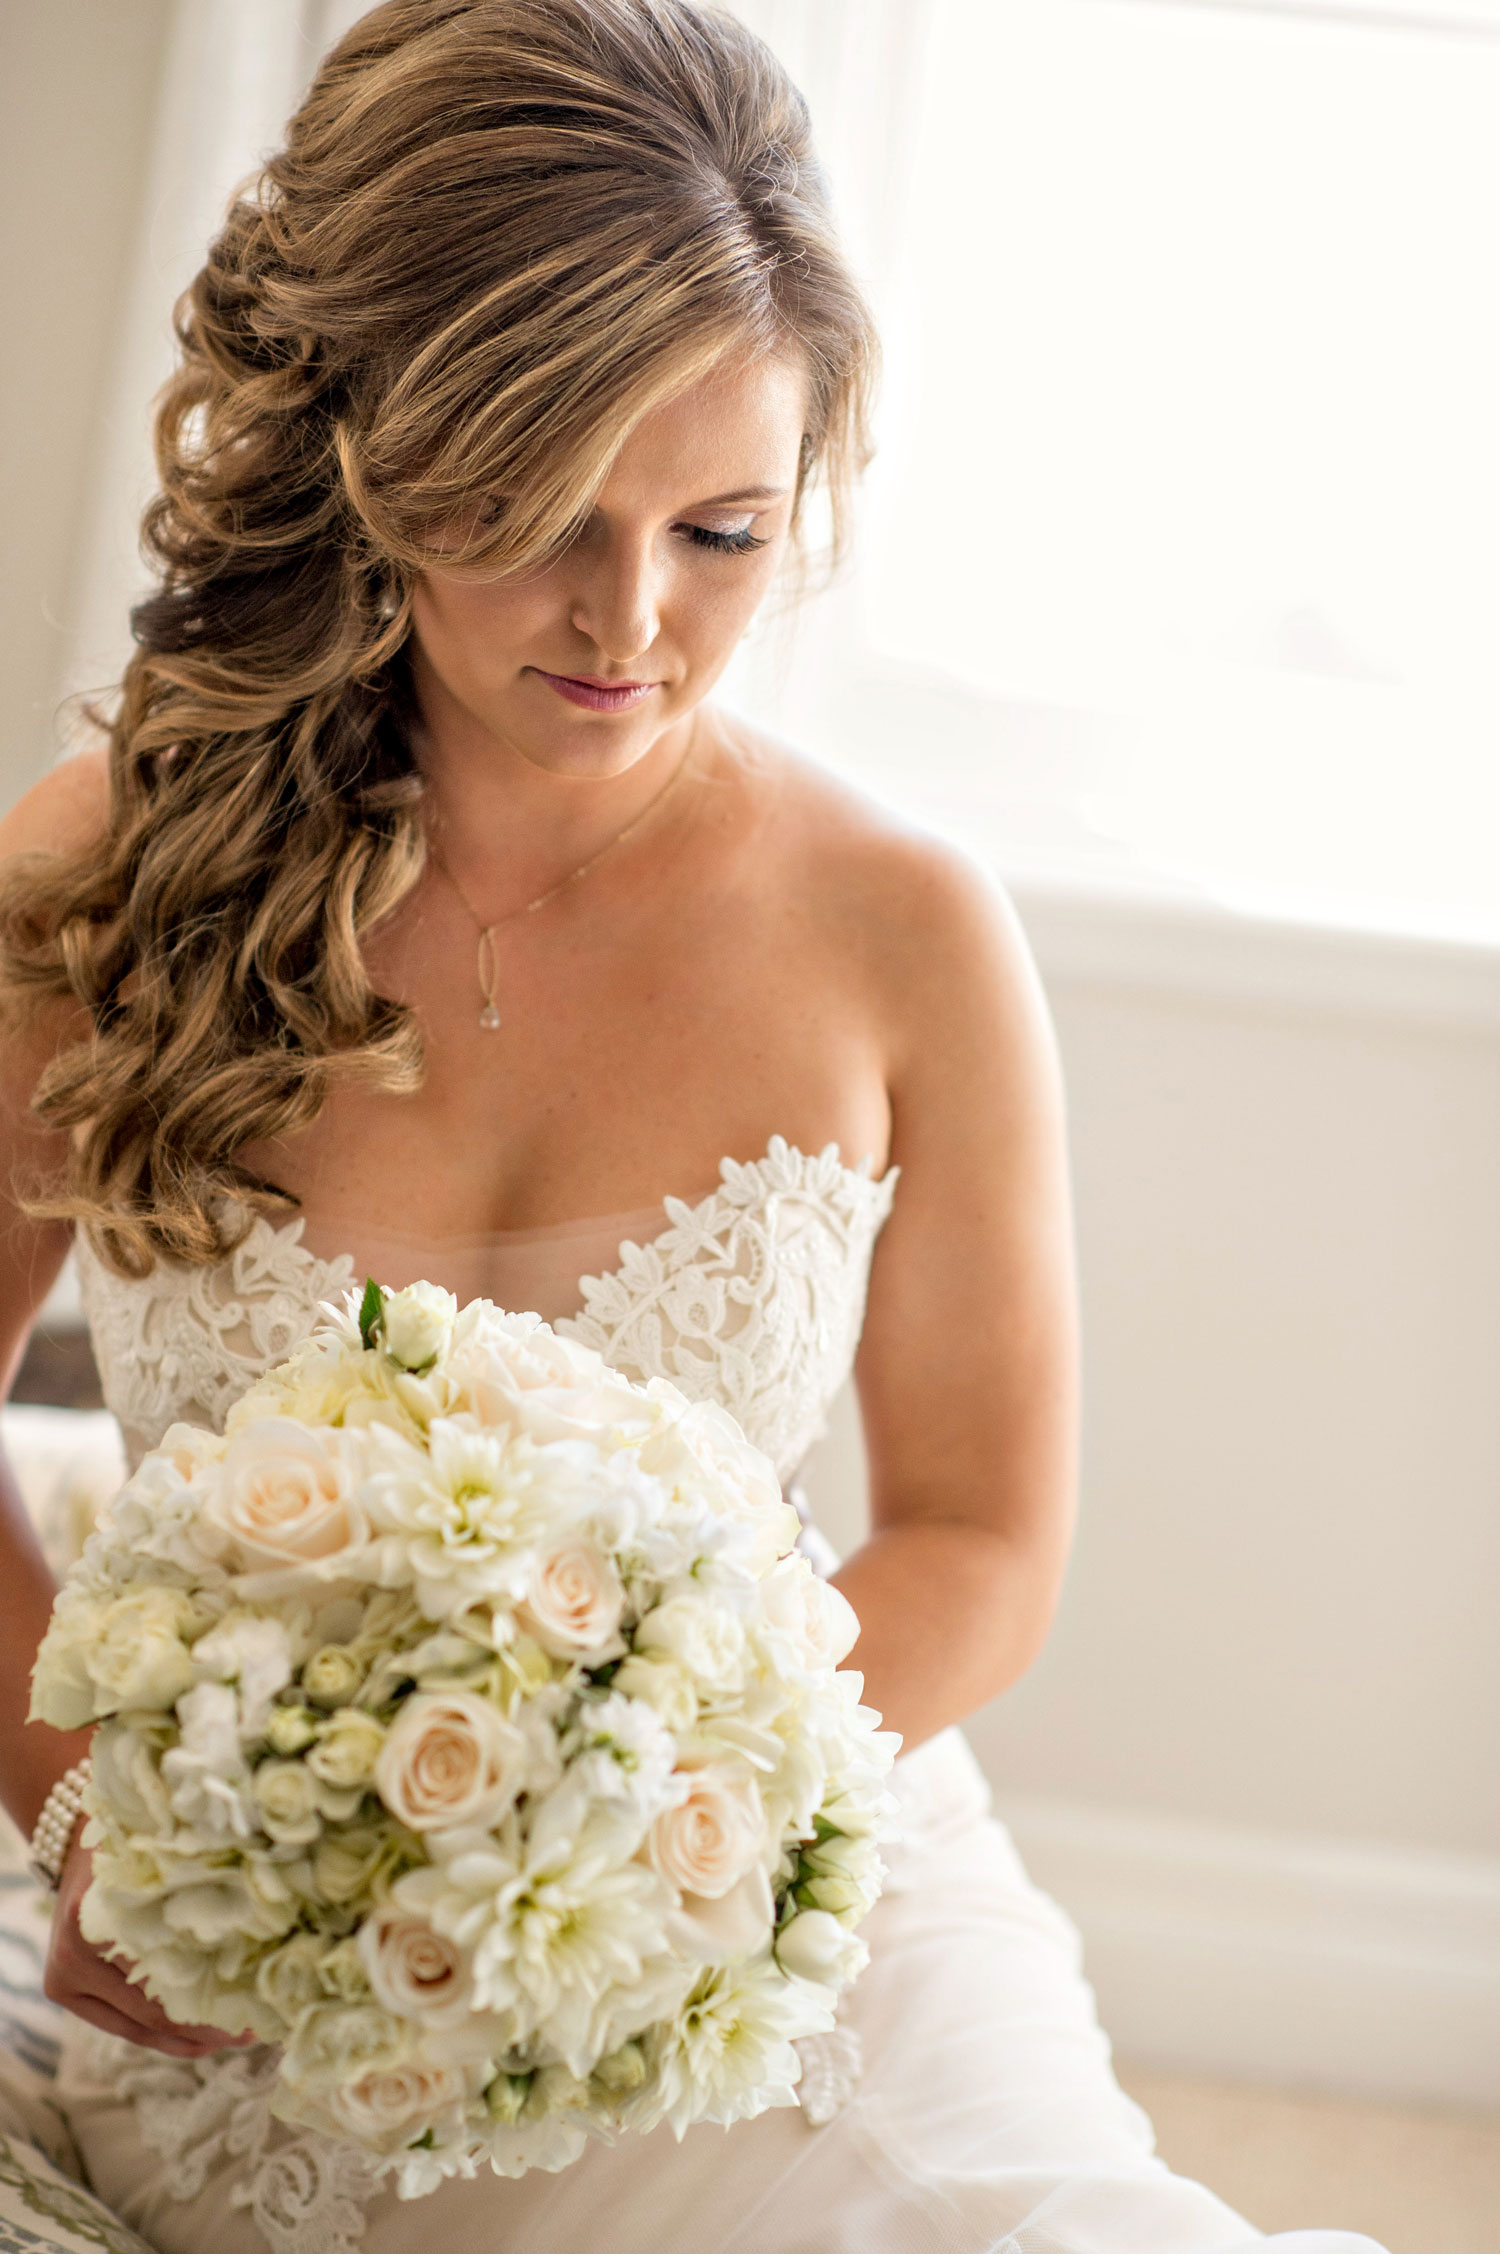 37 Pretty Wedding Hairstyles For Brides With Long Hair: Wedding Hair: Pretty Hairstyles For Brides With Long Hair